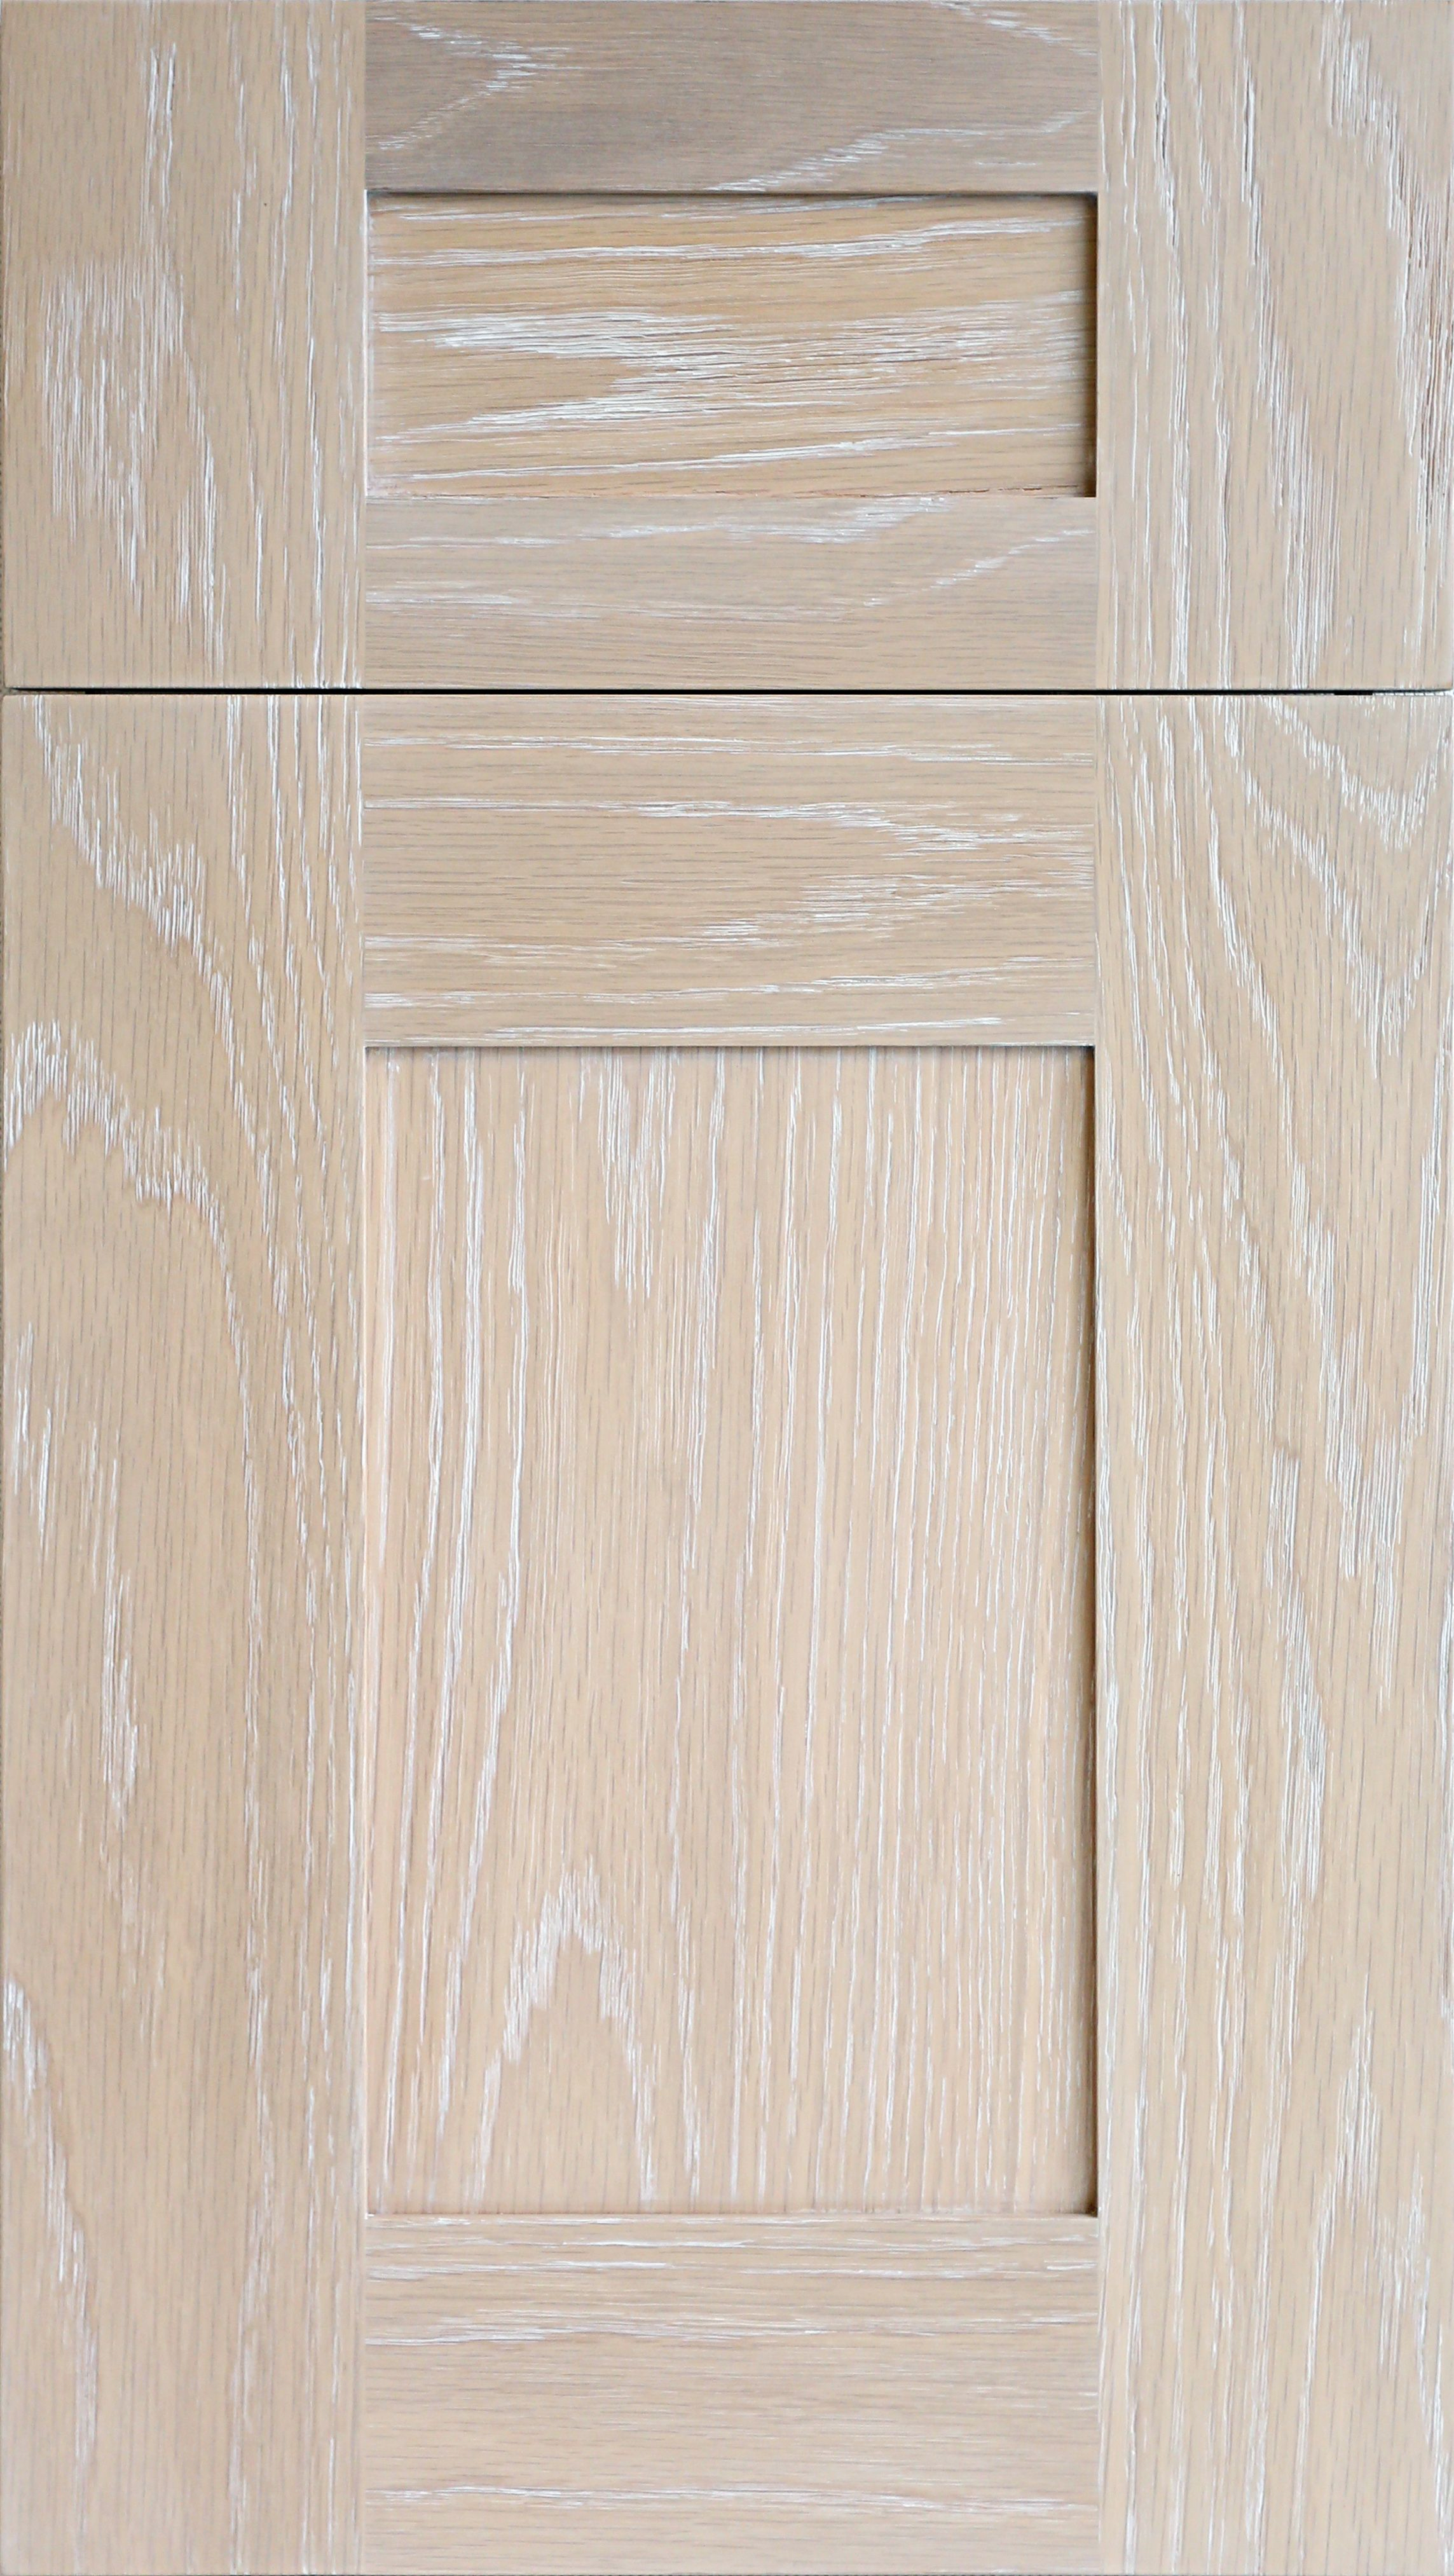 Surprising Meridian Wr Door In Plainsawn White Oak In Driftwood Stain Beutiful Home Inspiration Ommitmahrainfo